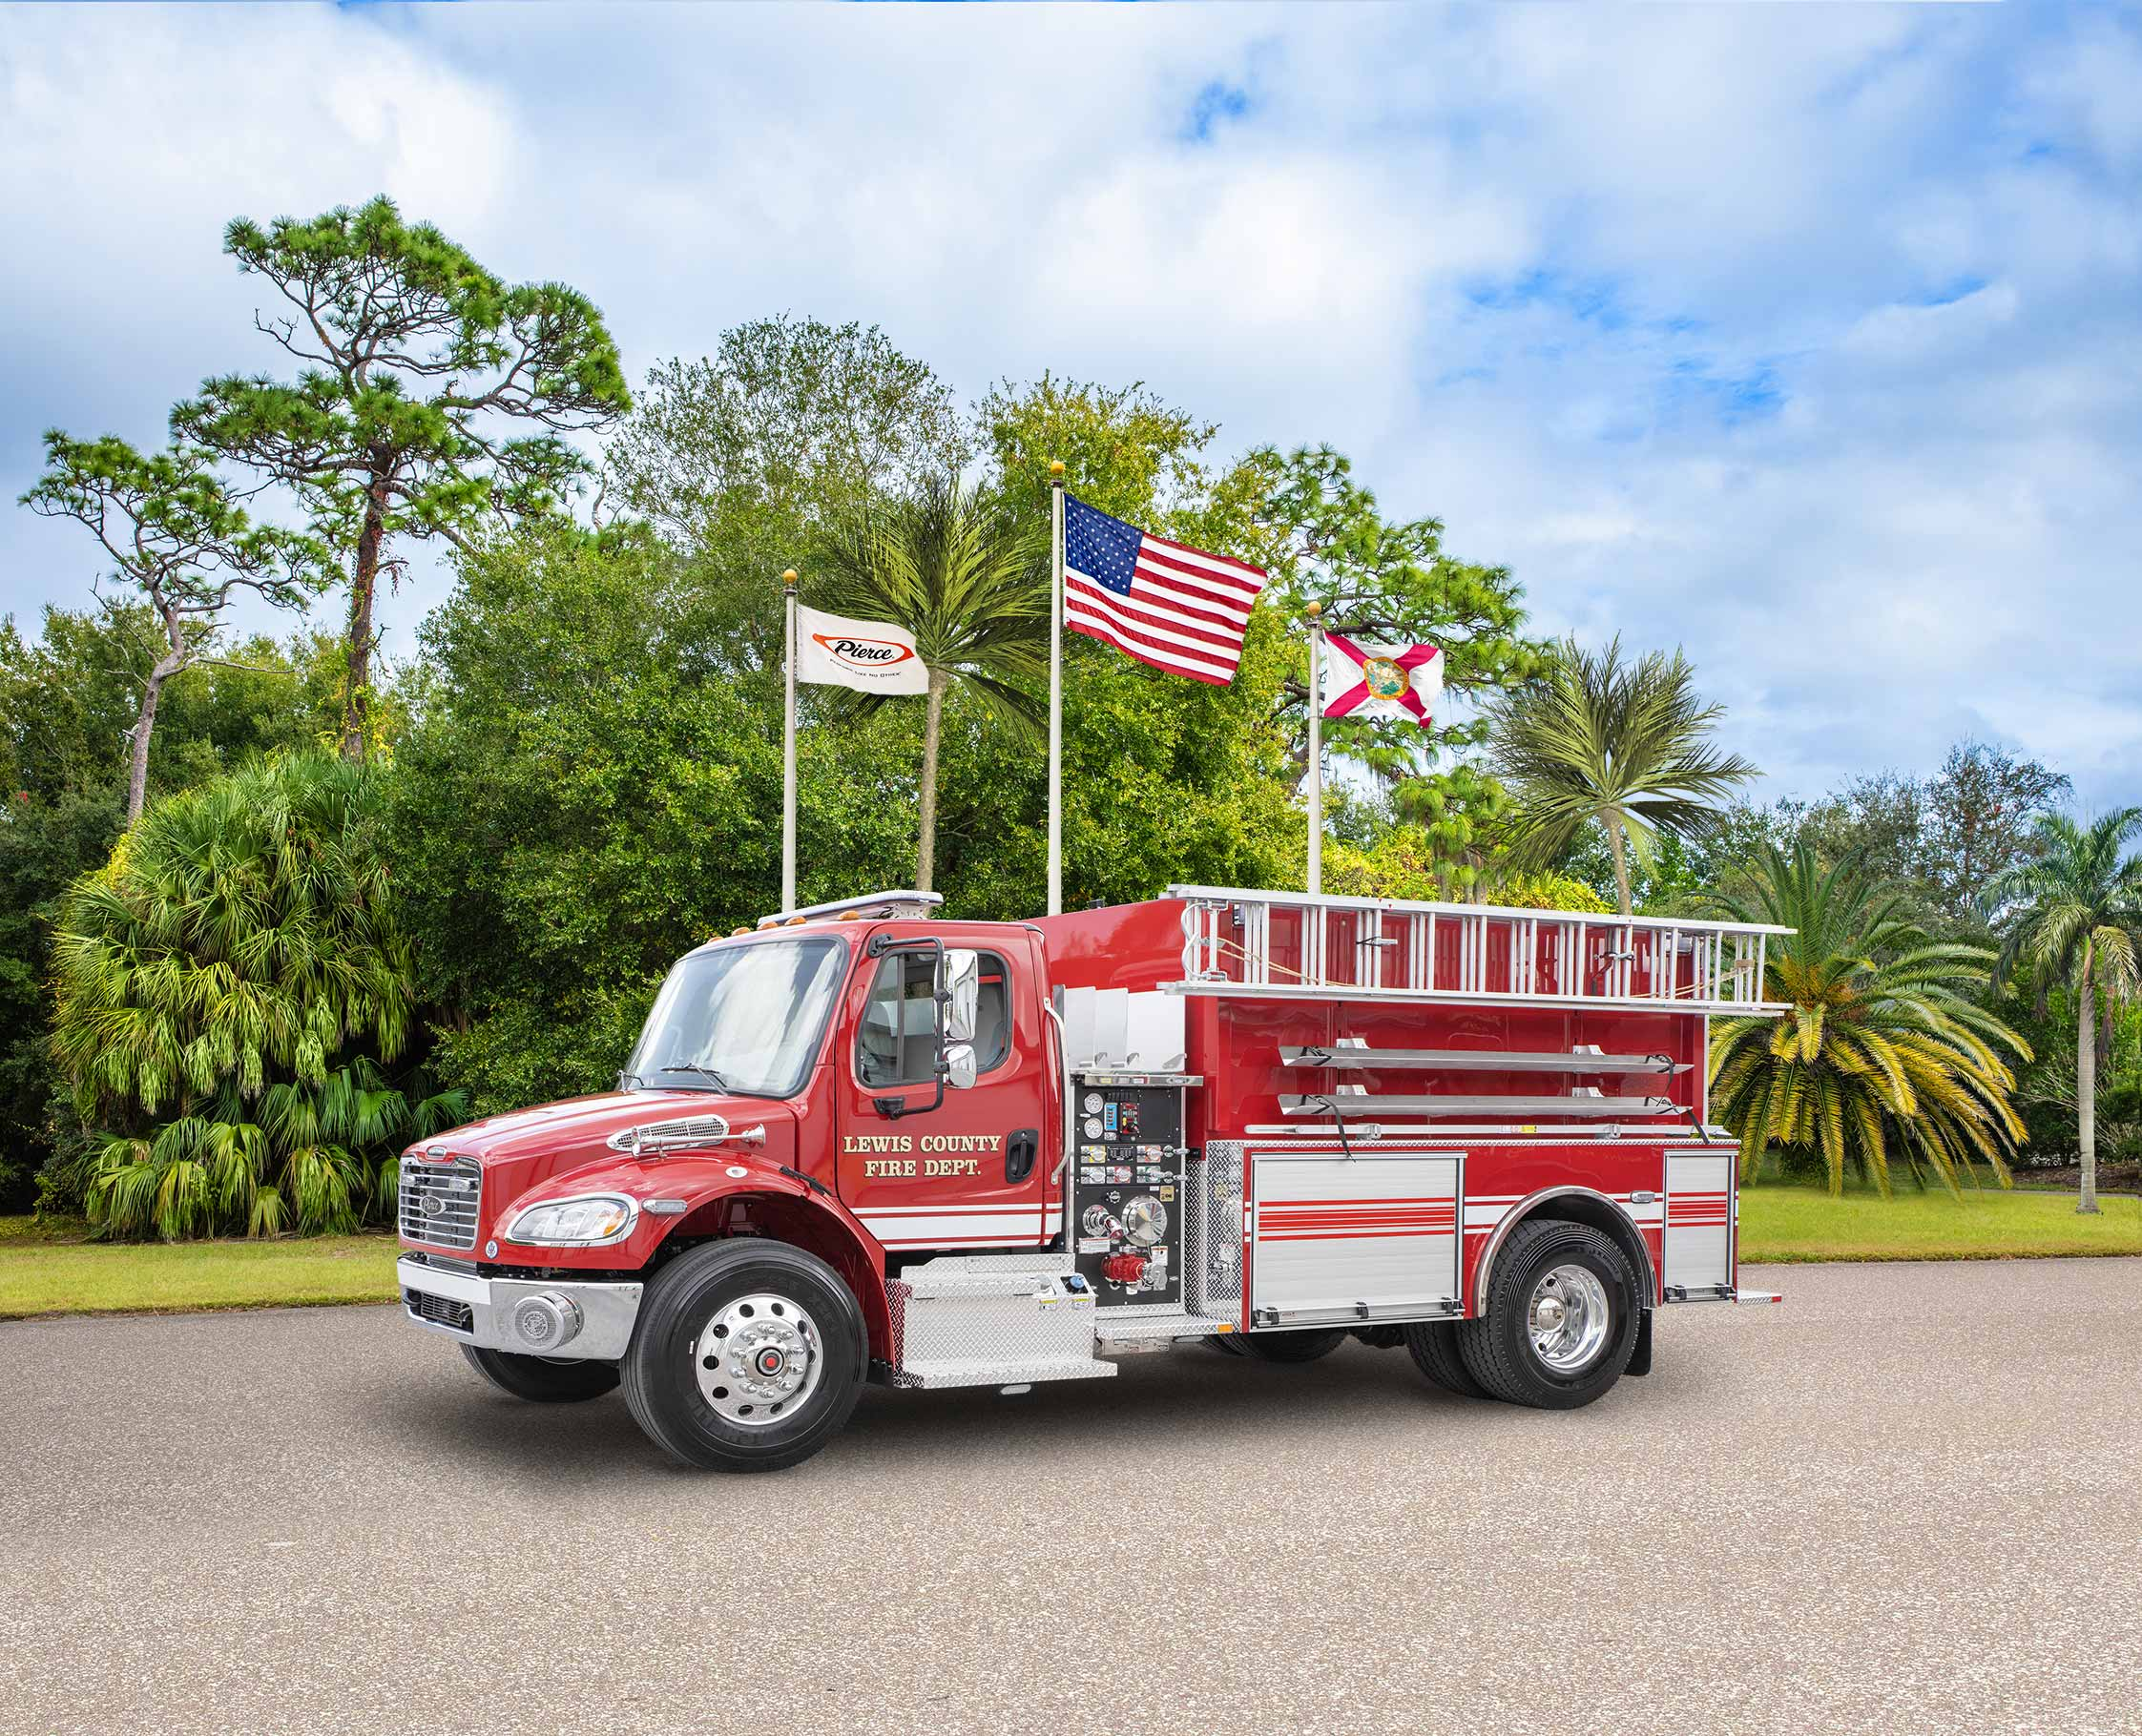 Lewis County Fire Department - Tanker